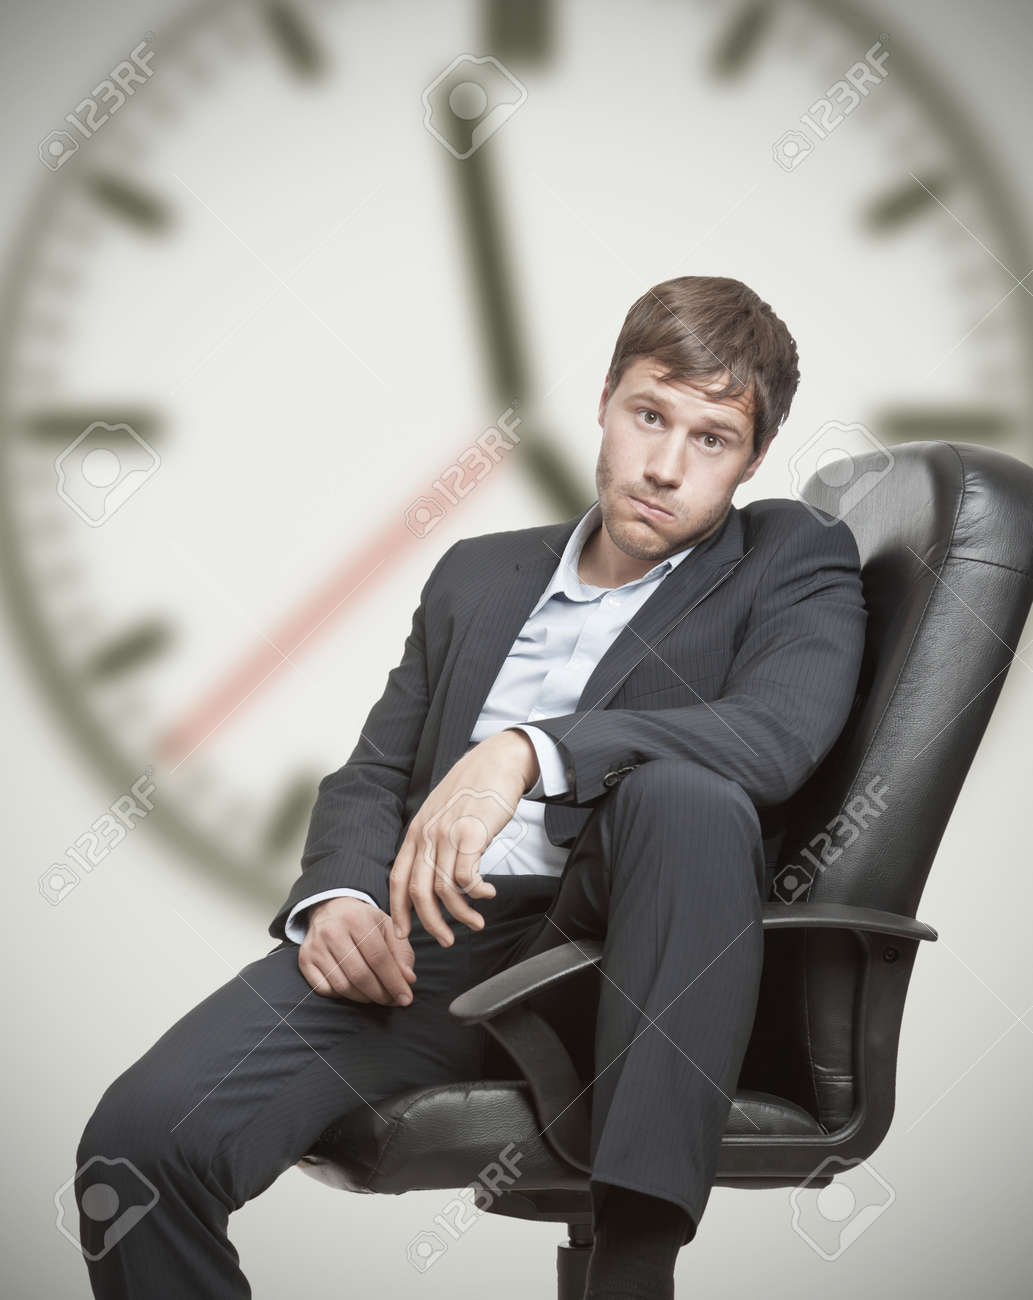 Frustrated young business man waiting for the end of the workday Standard-Bild - 14433306